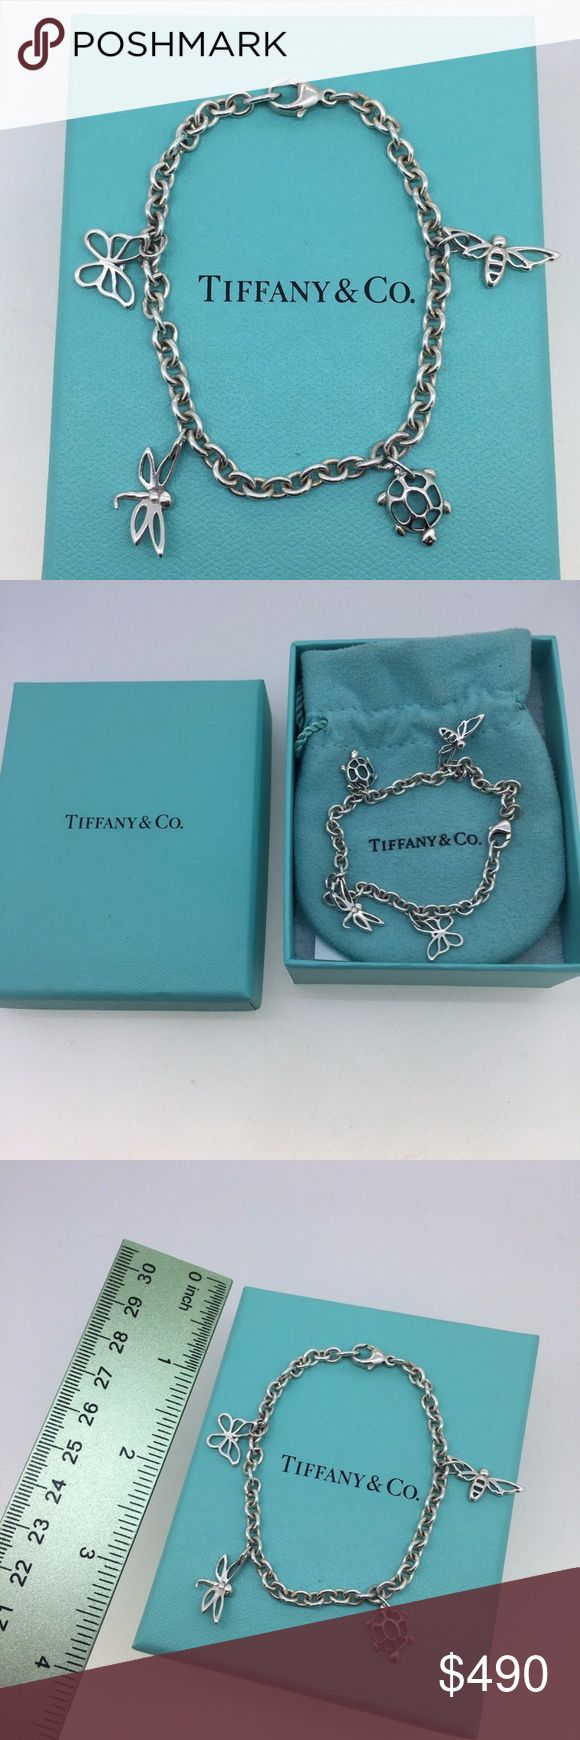 Tiffany & Co Insect & Turtle Silver Charm Bracelet